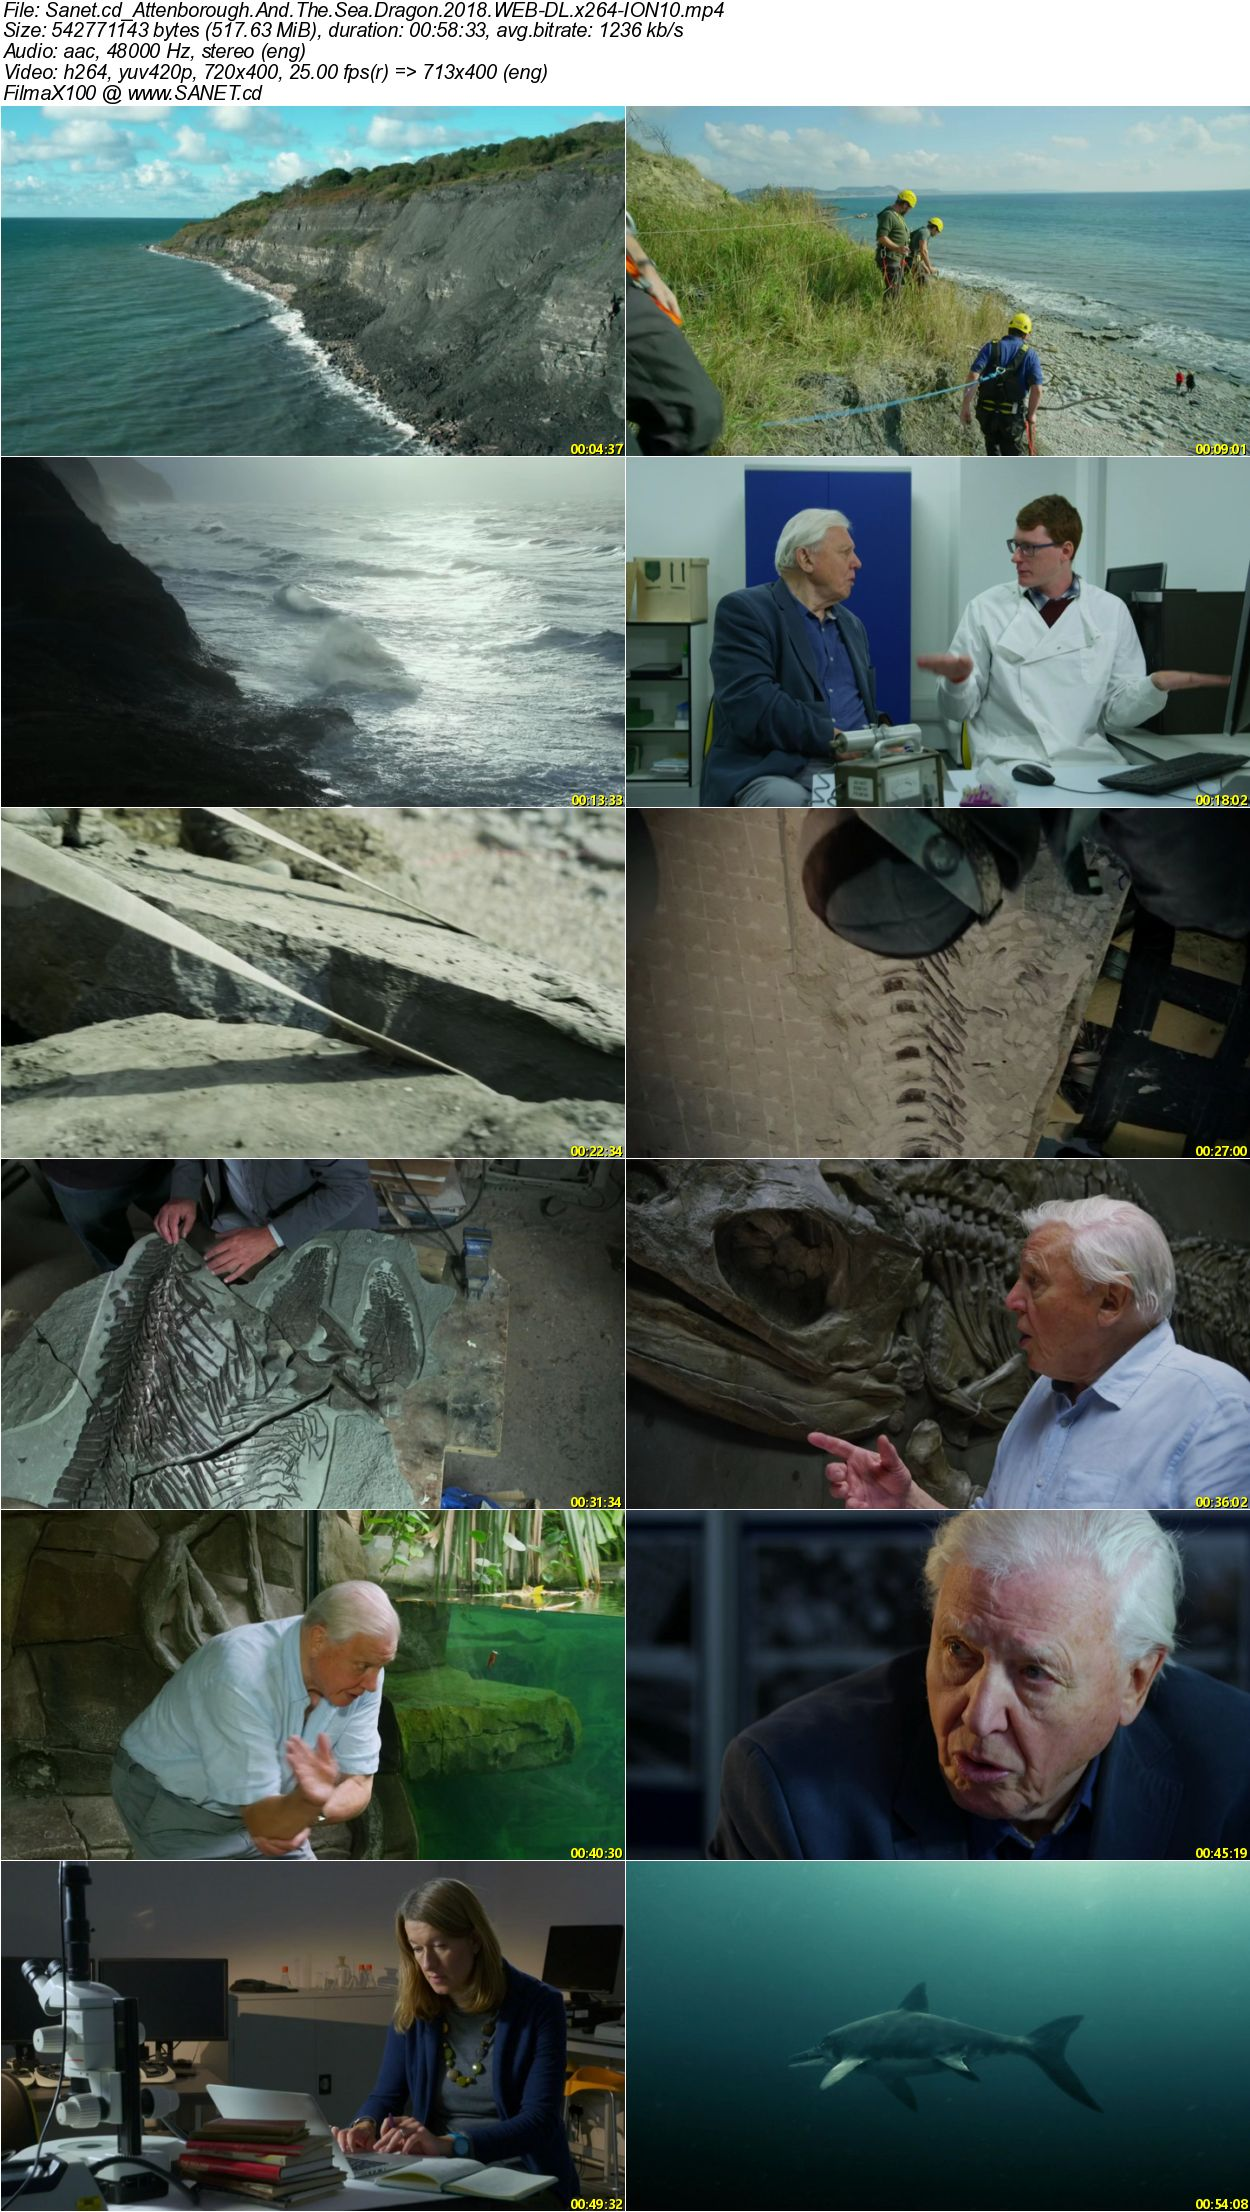 Download Attenborough And The Sea Dragon 2018 Web Dl X264 Ion10